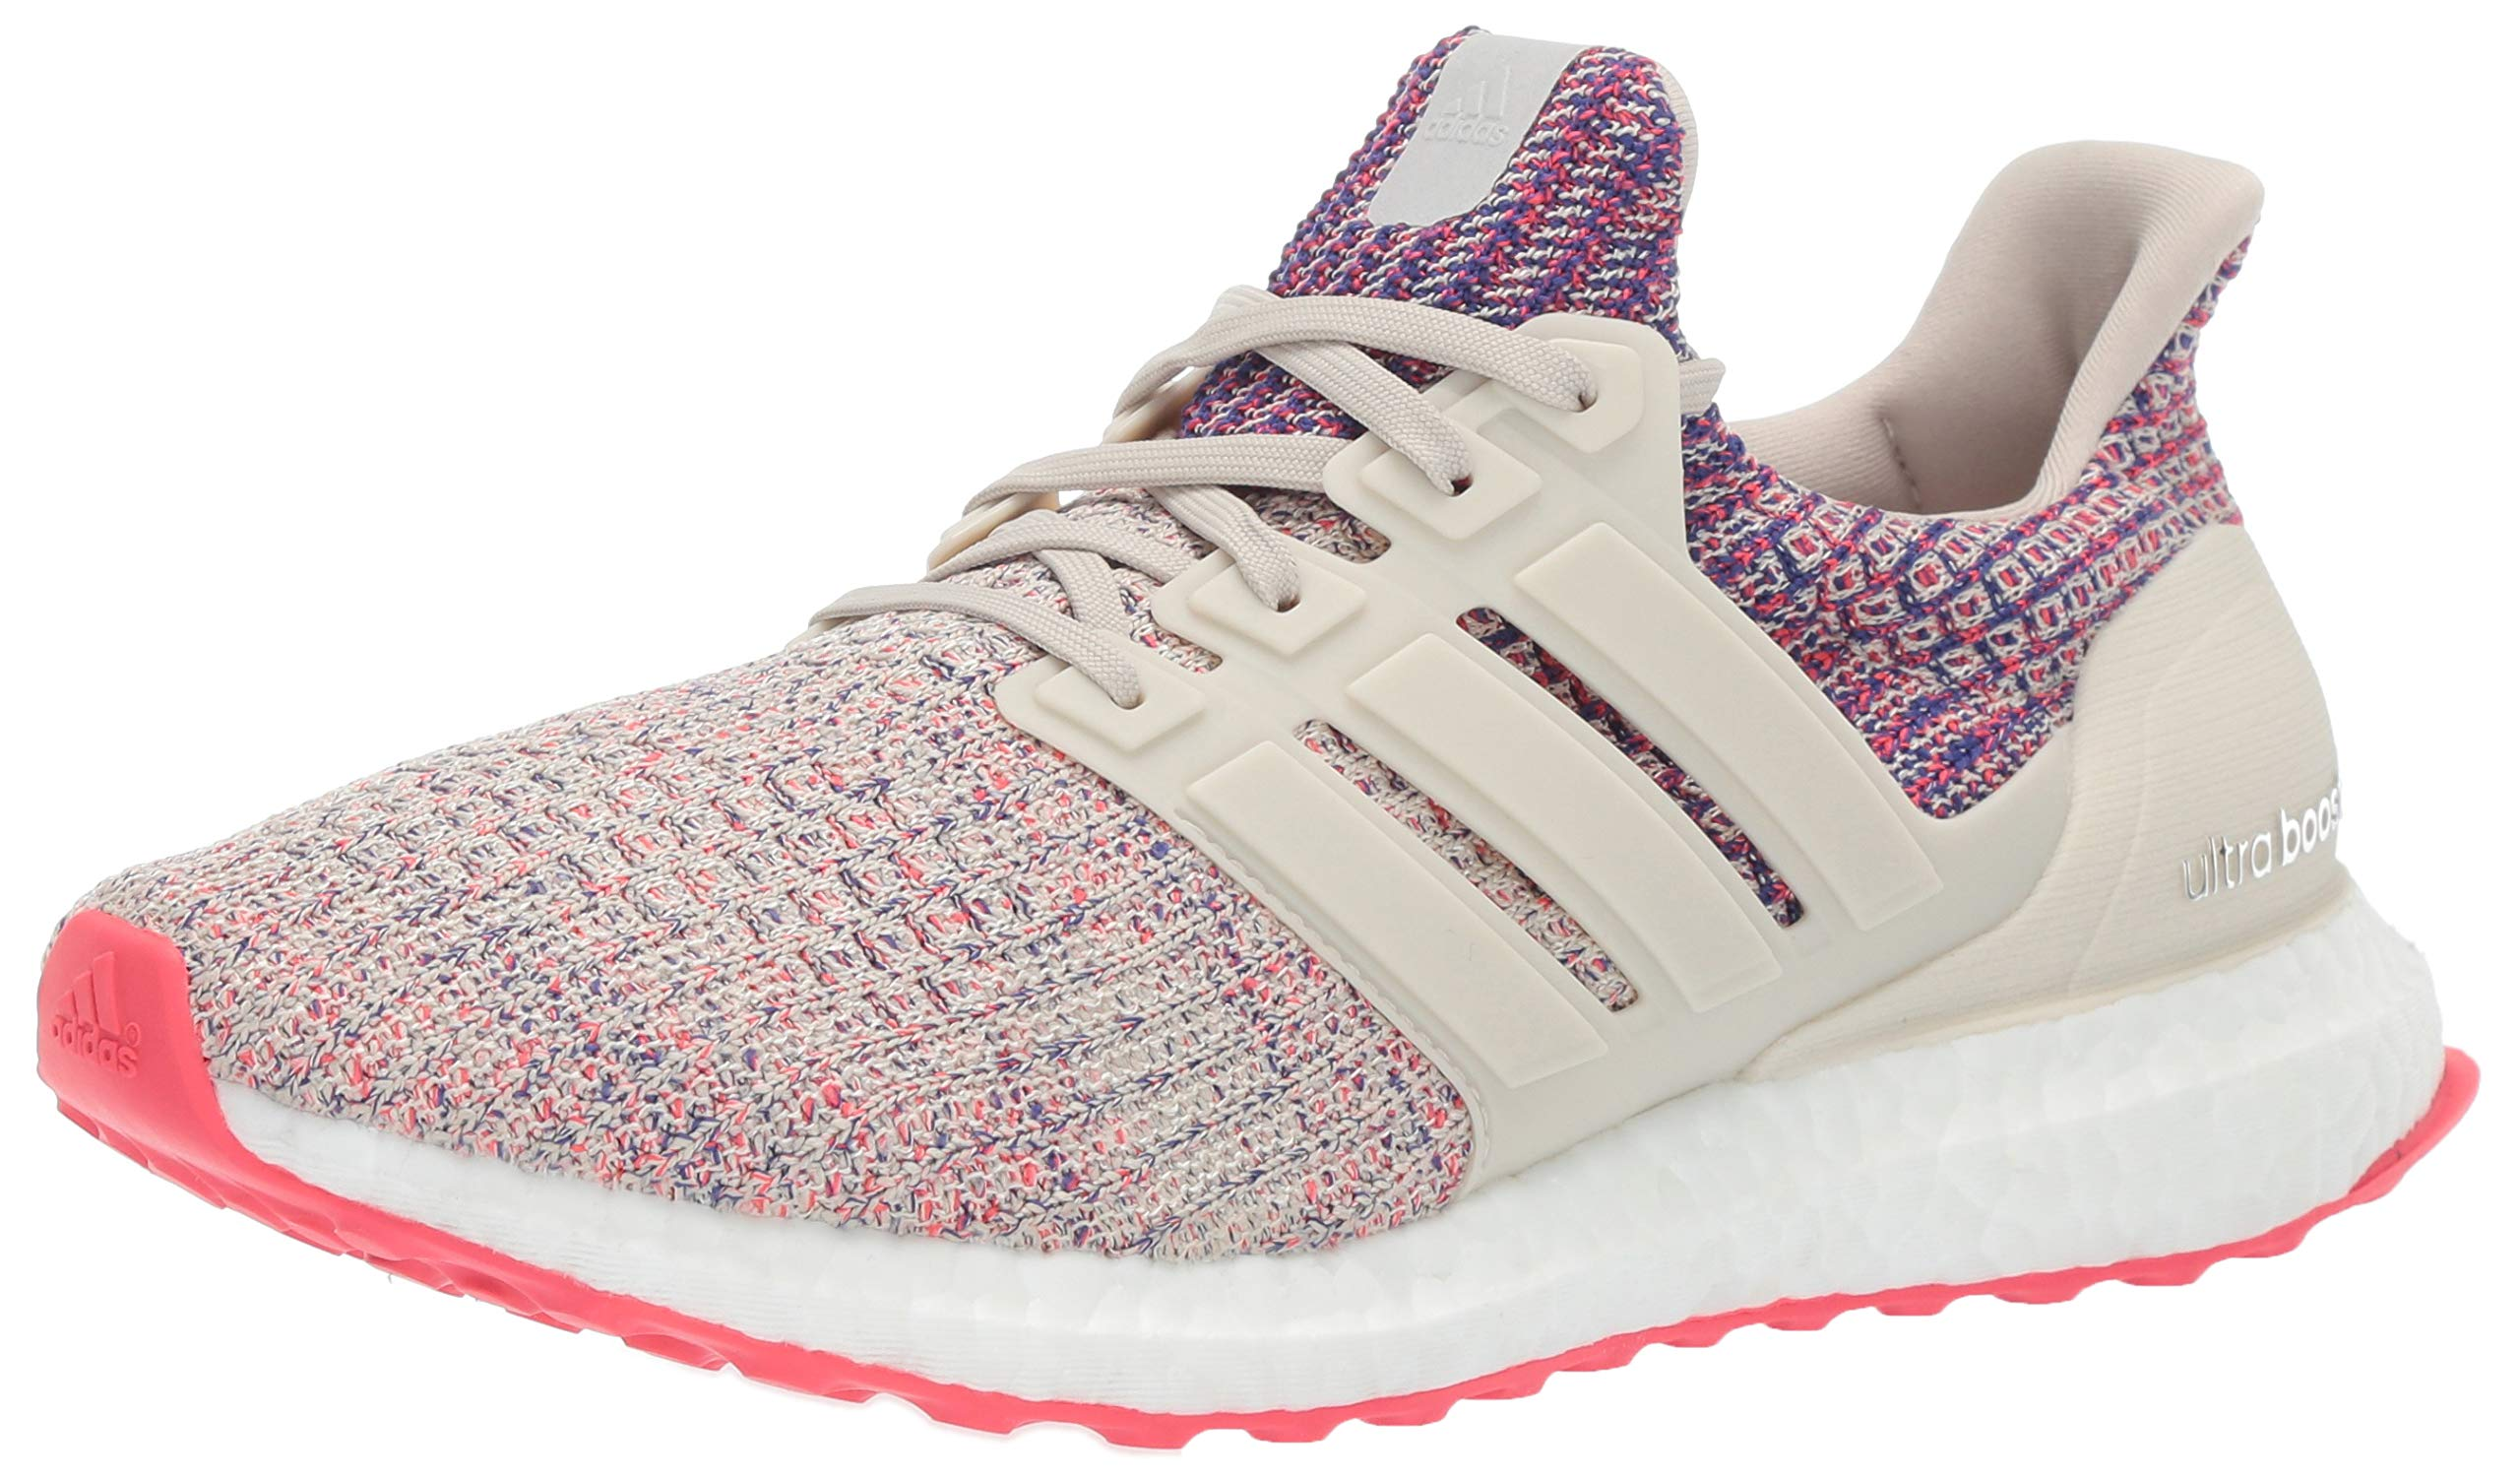 adidas Women's Ultraboost, Clear Brown/Shock red/Active Blue, 5 M US